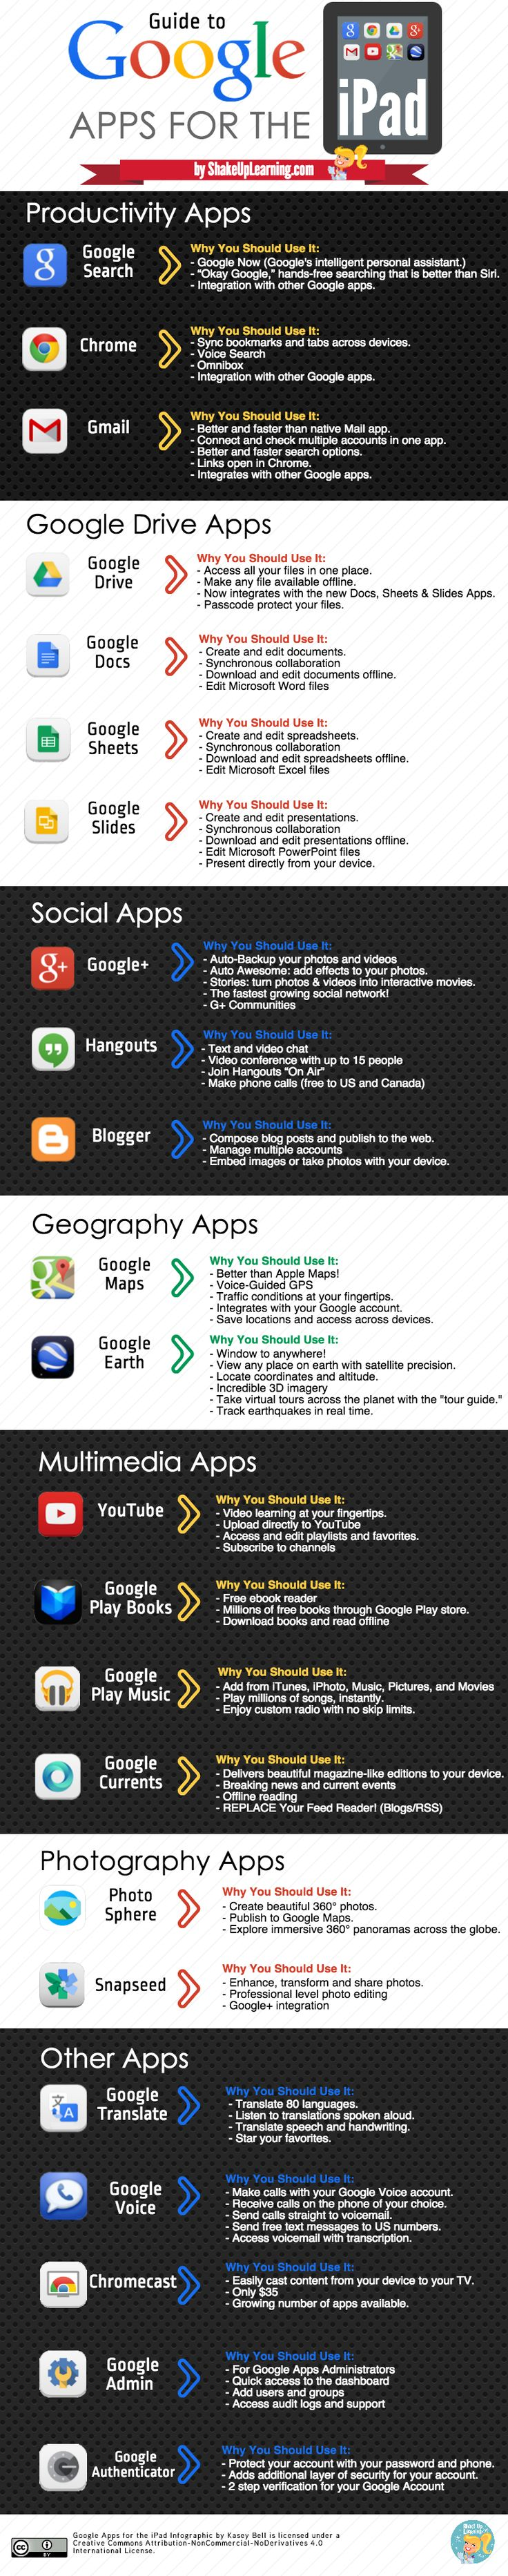 A Glorious Guide to Google Apps from Shake Up Learning: http://www.shakeuplearning.com/uploads/1/7/2/2/1722468/guide_to_google_apps_for_the_ipad.png